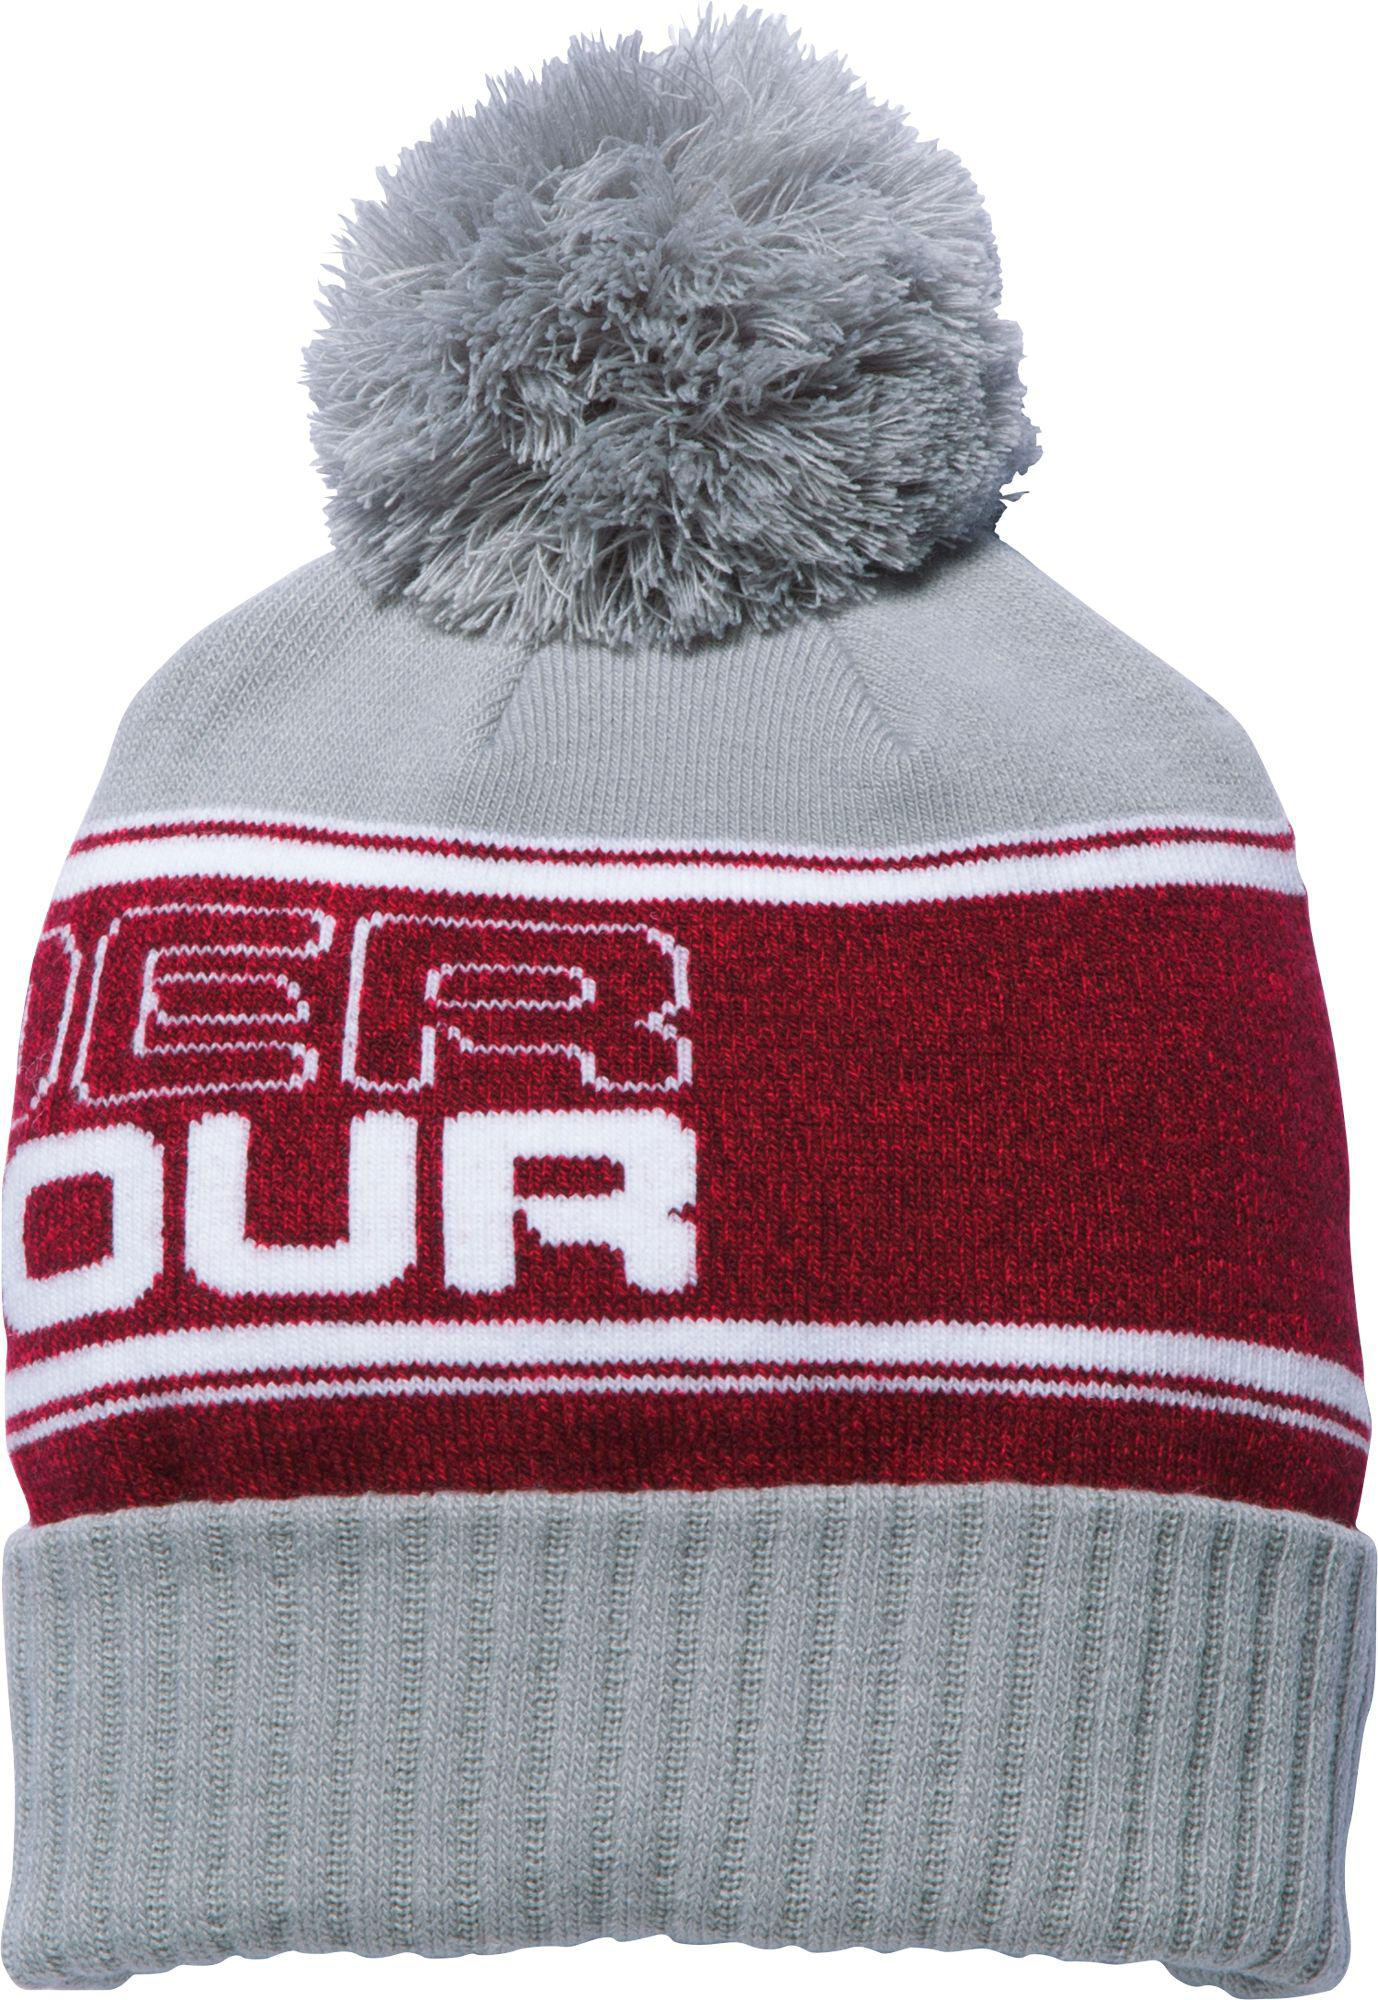 6a56e8fadc7 Under Armour - Red Pom Beanie for Men - Lyst. View fullscreen